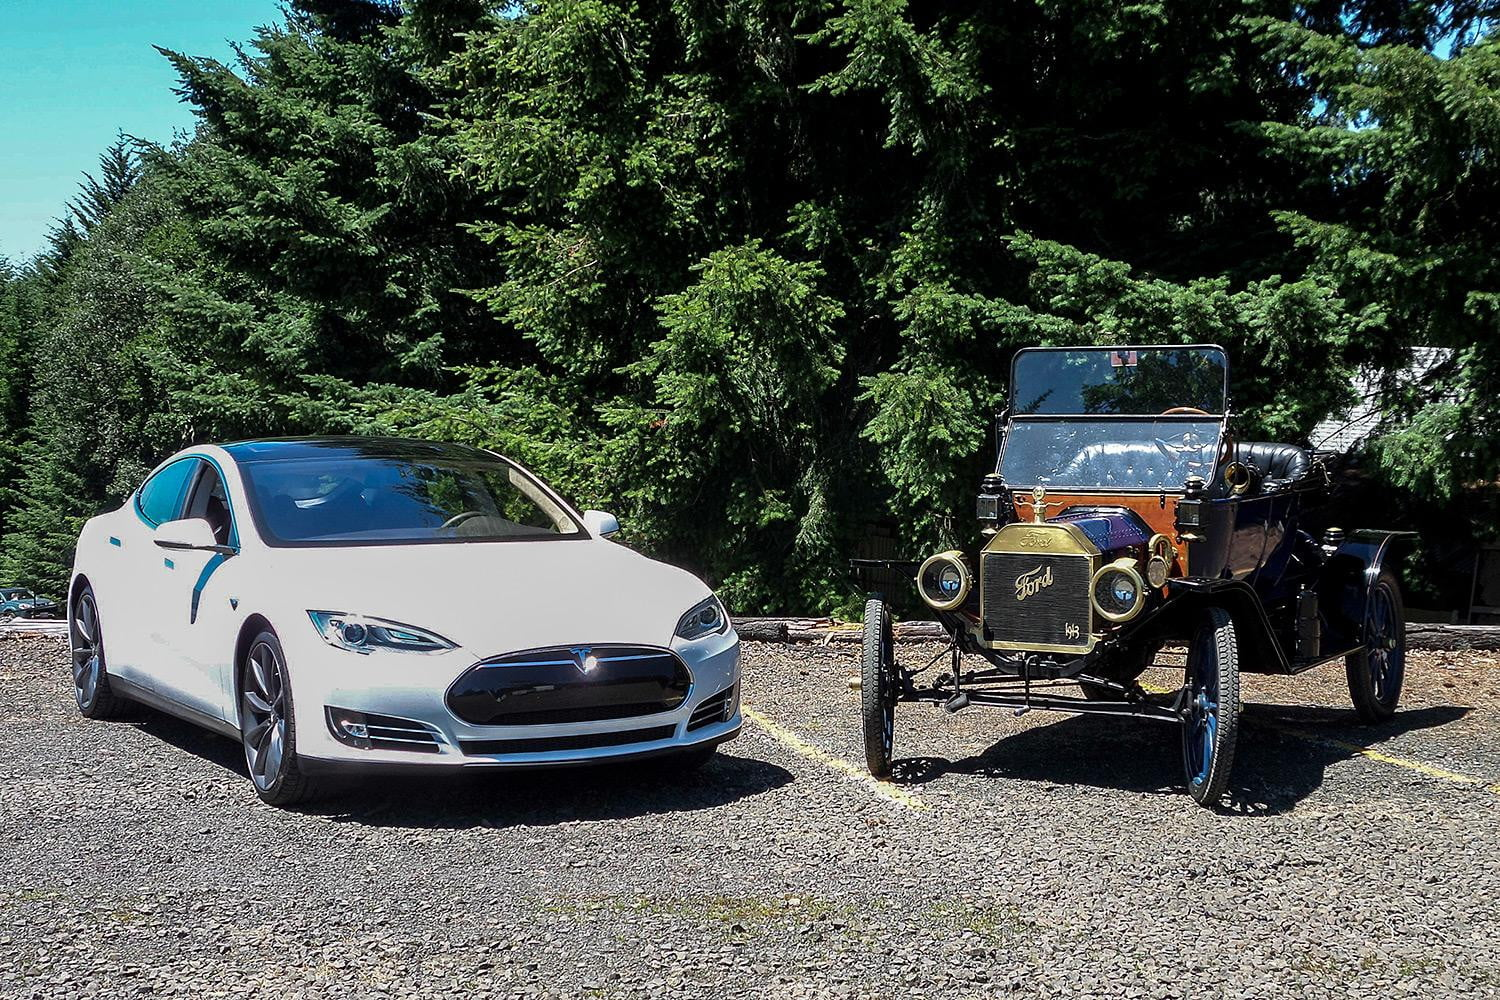 Tesla Model S next to a Ford Model T